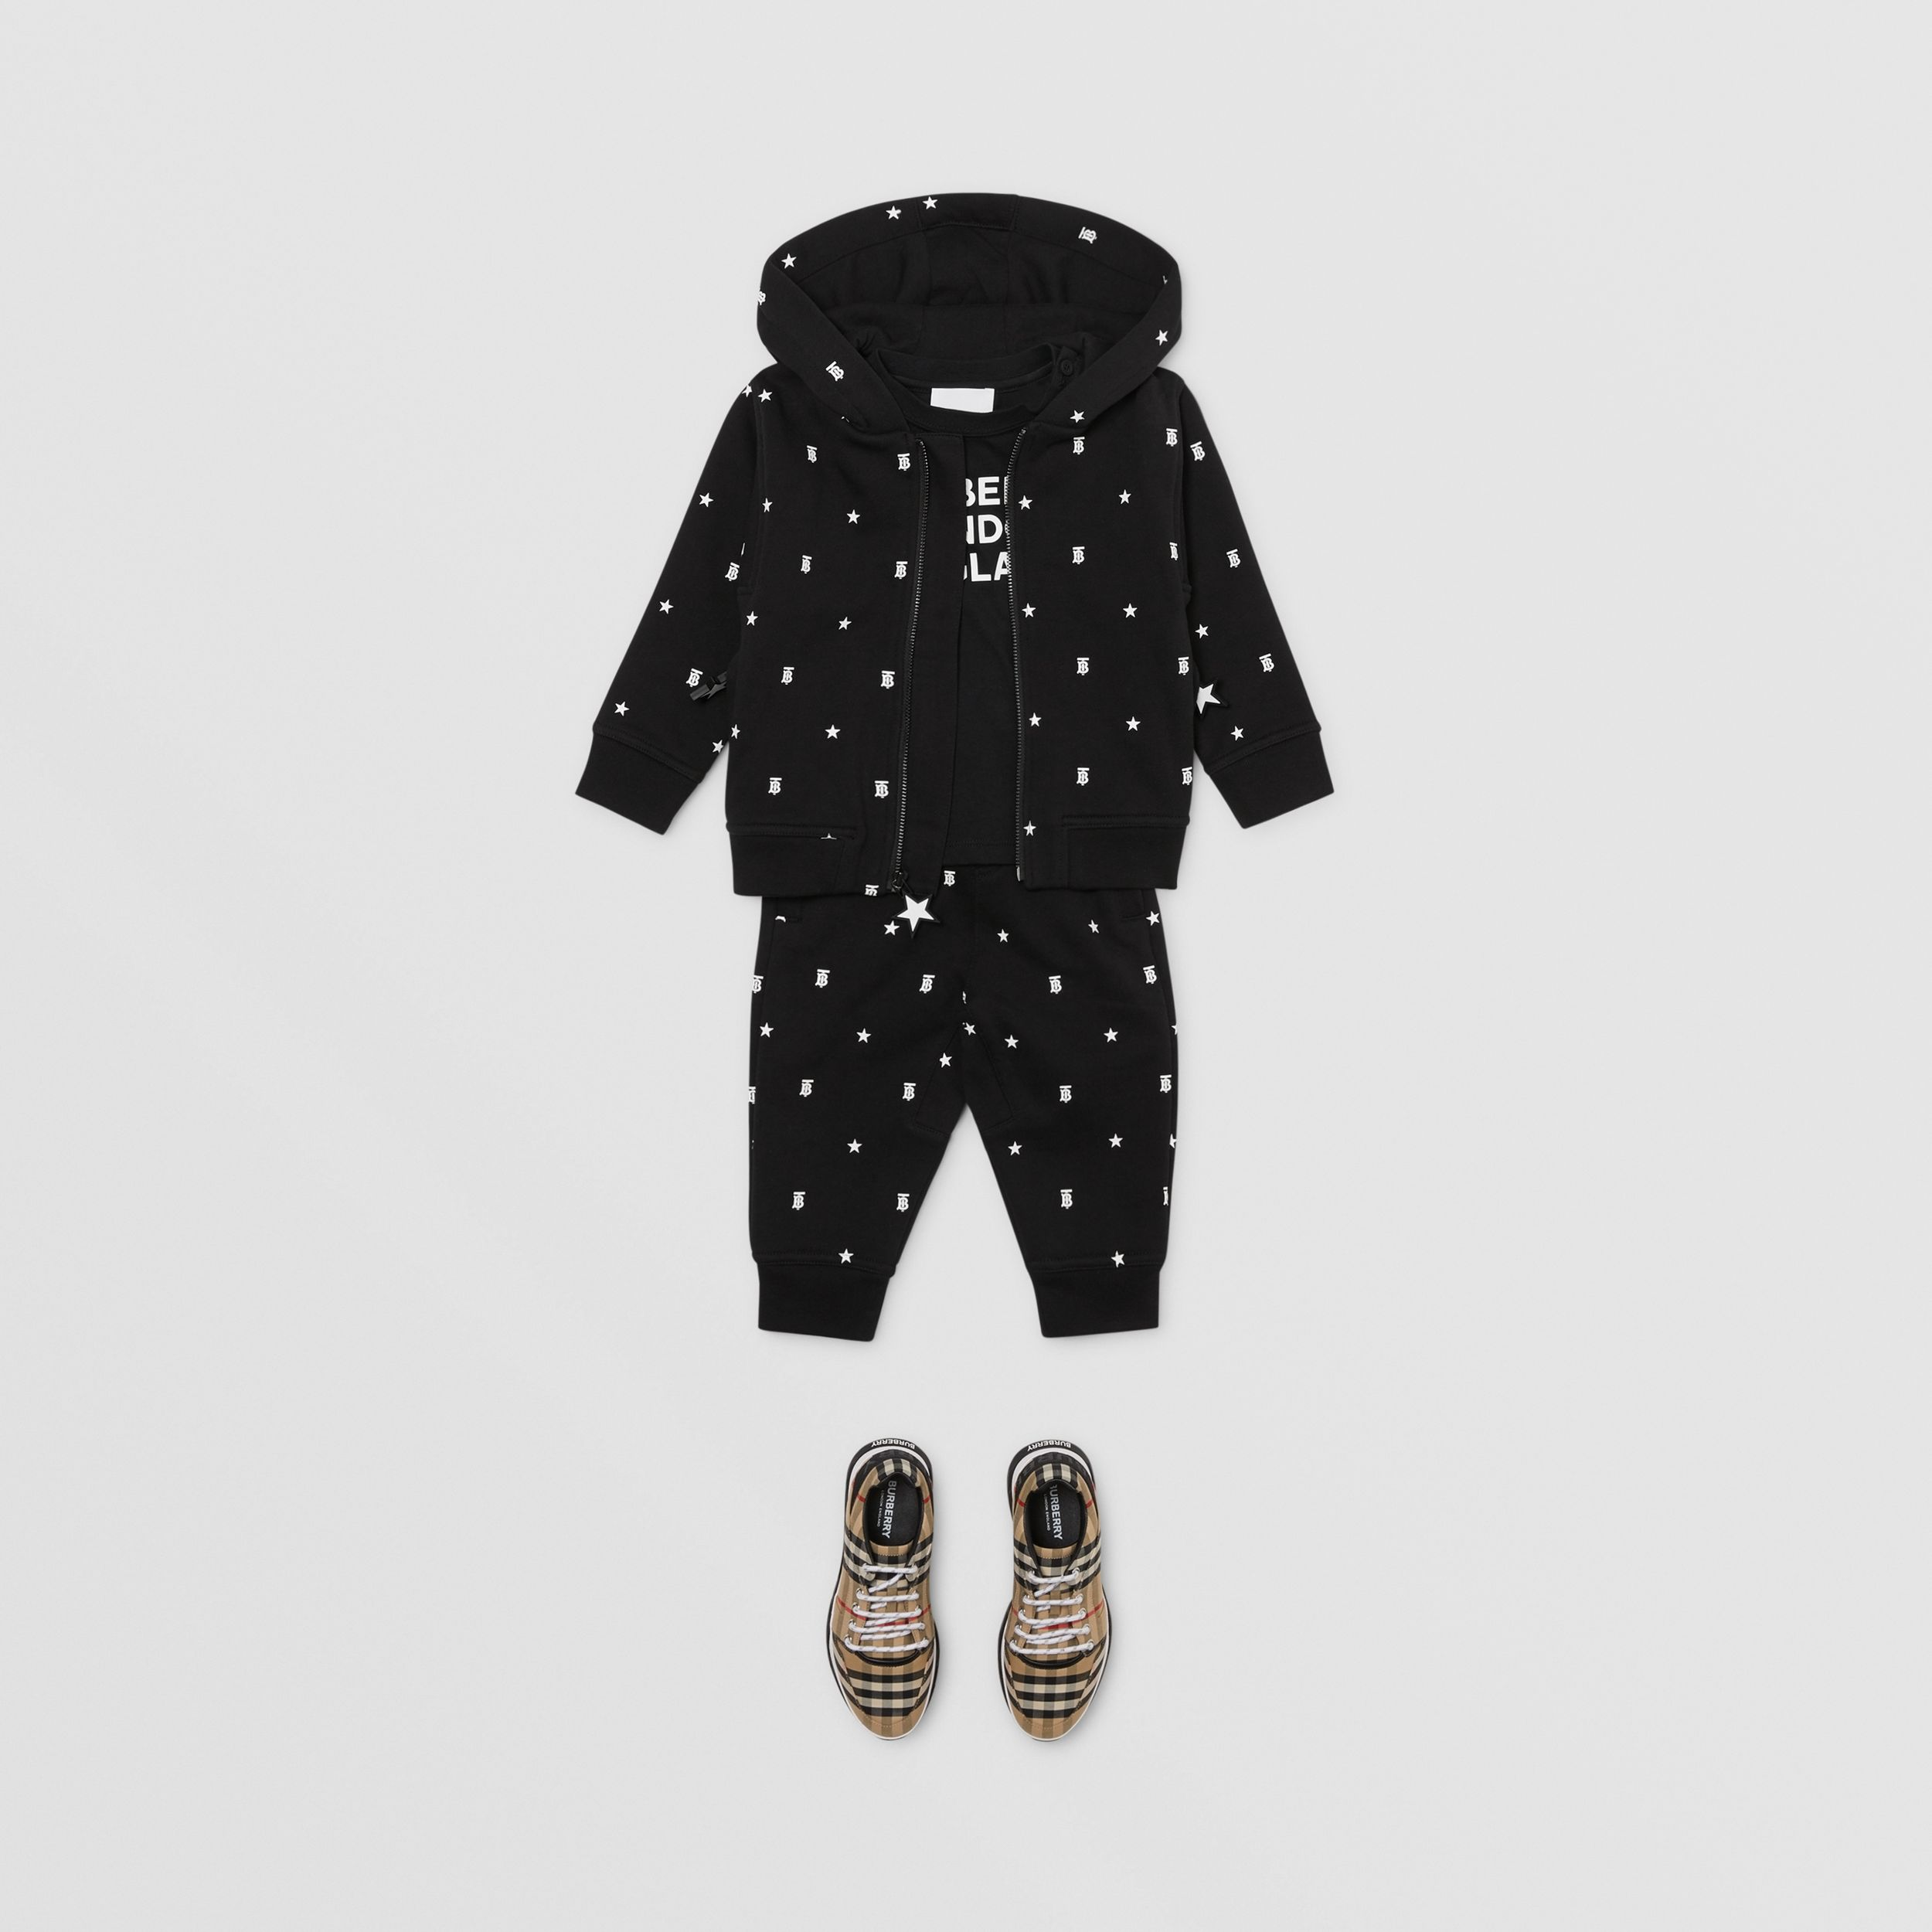 Star and Monogram Motif Cotton Hooded Top in Black - Children | Burberry - 4